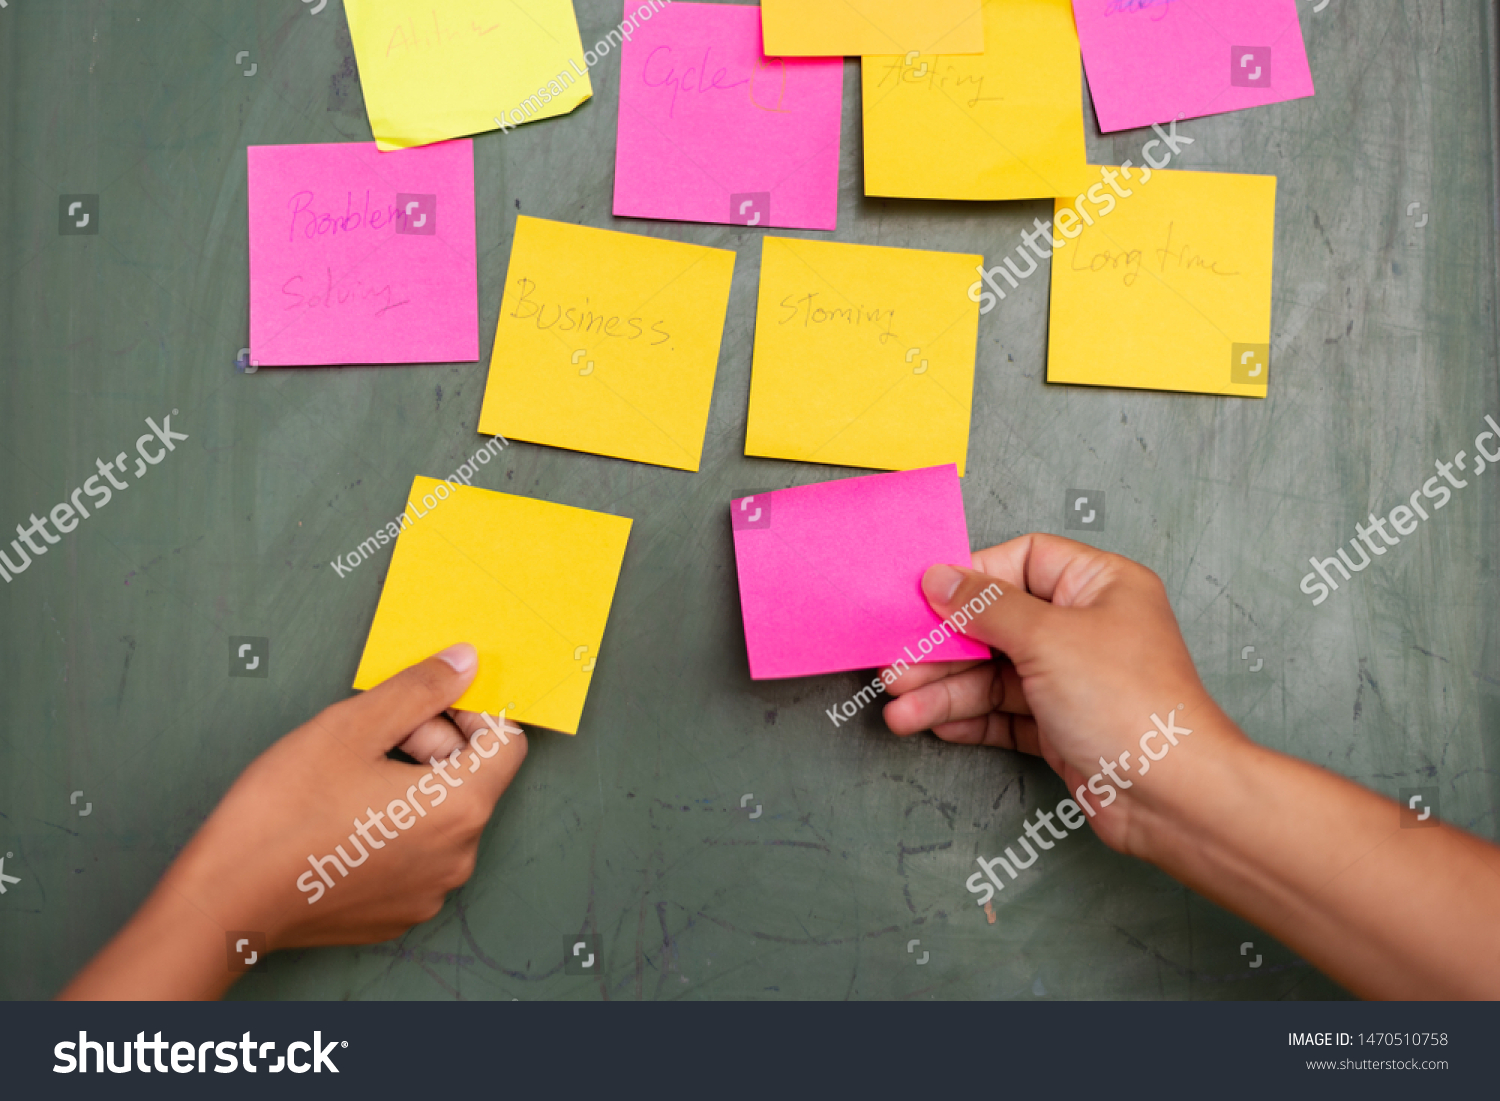 Close up woman hand holding colorful note sticky for brainstorm and share idea strategy workshop business.Brainstorming concept. #1470510758